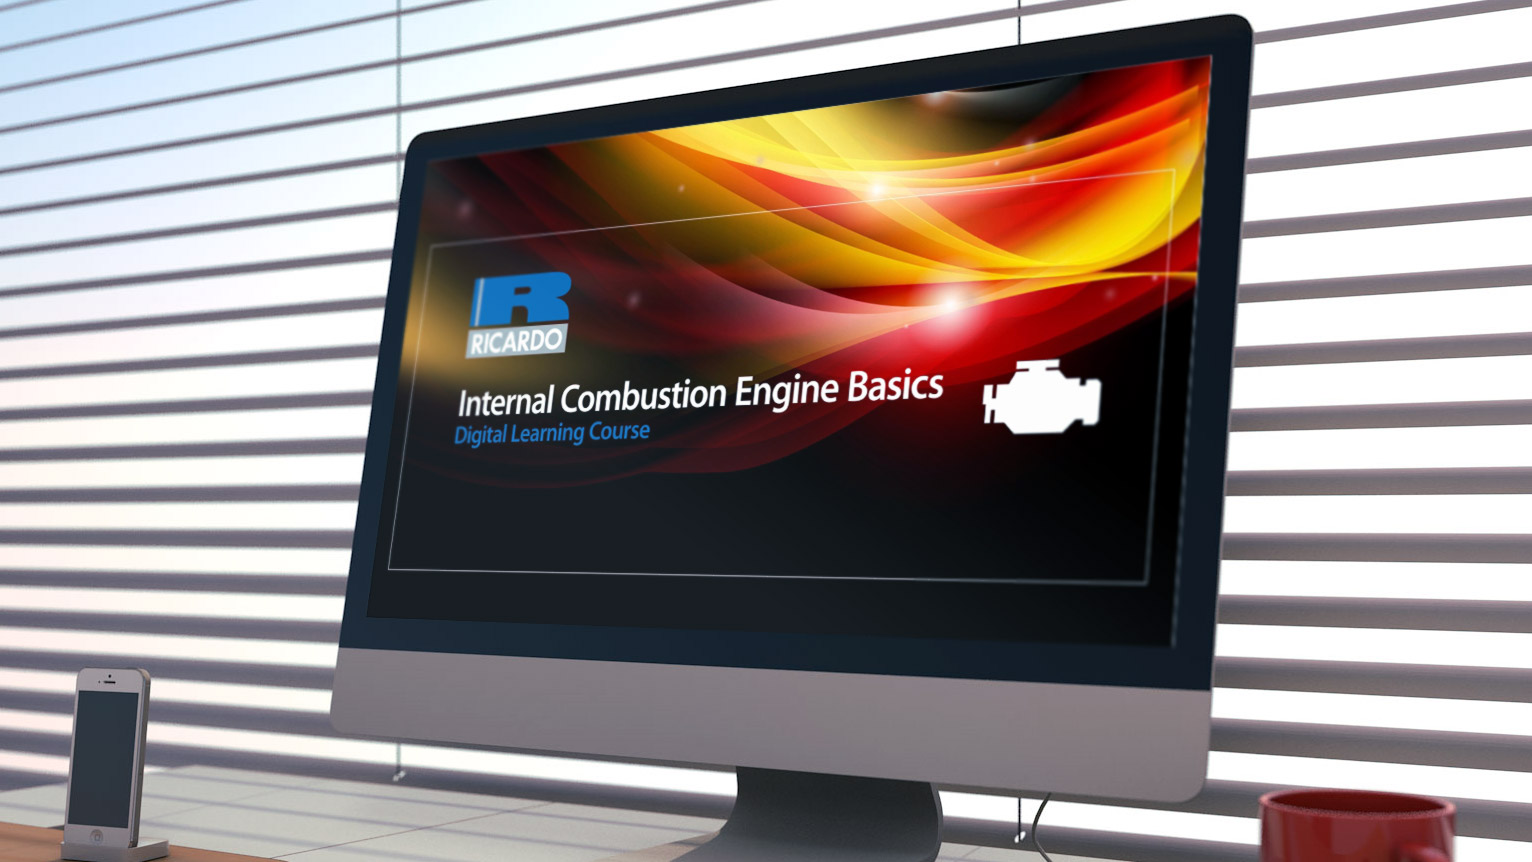 Internal Combustion Engine Basics